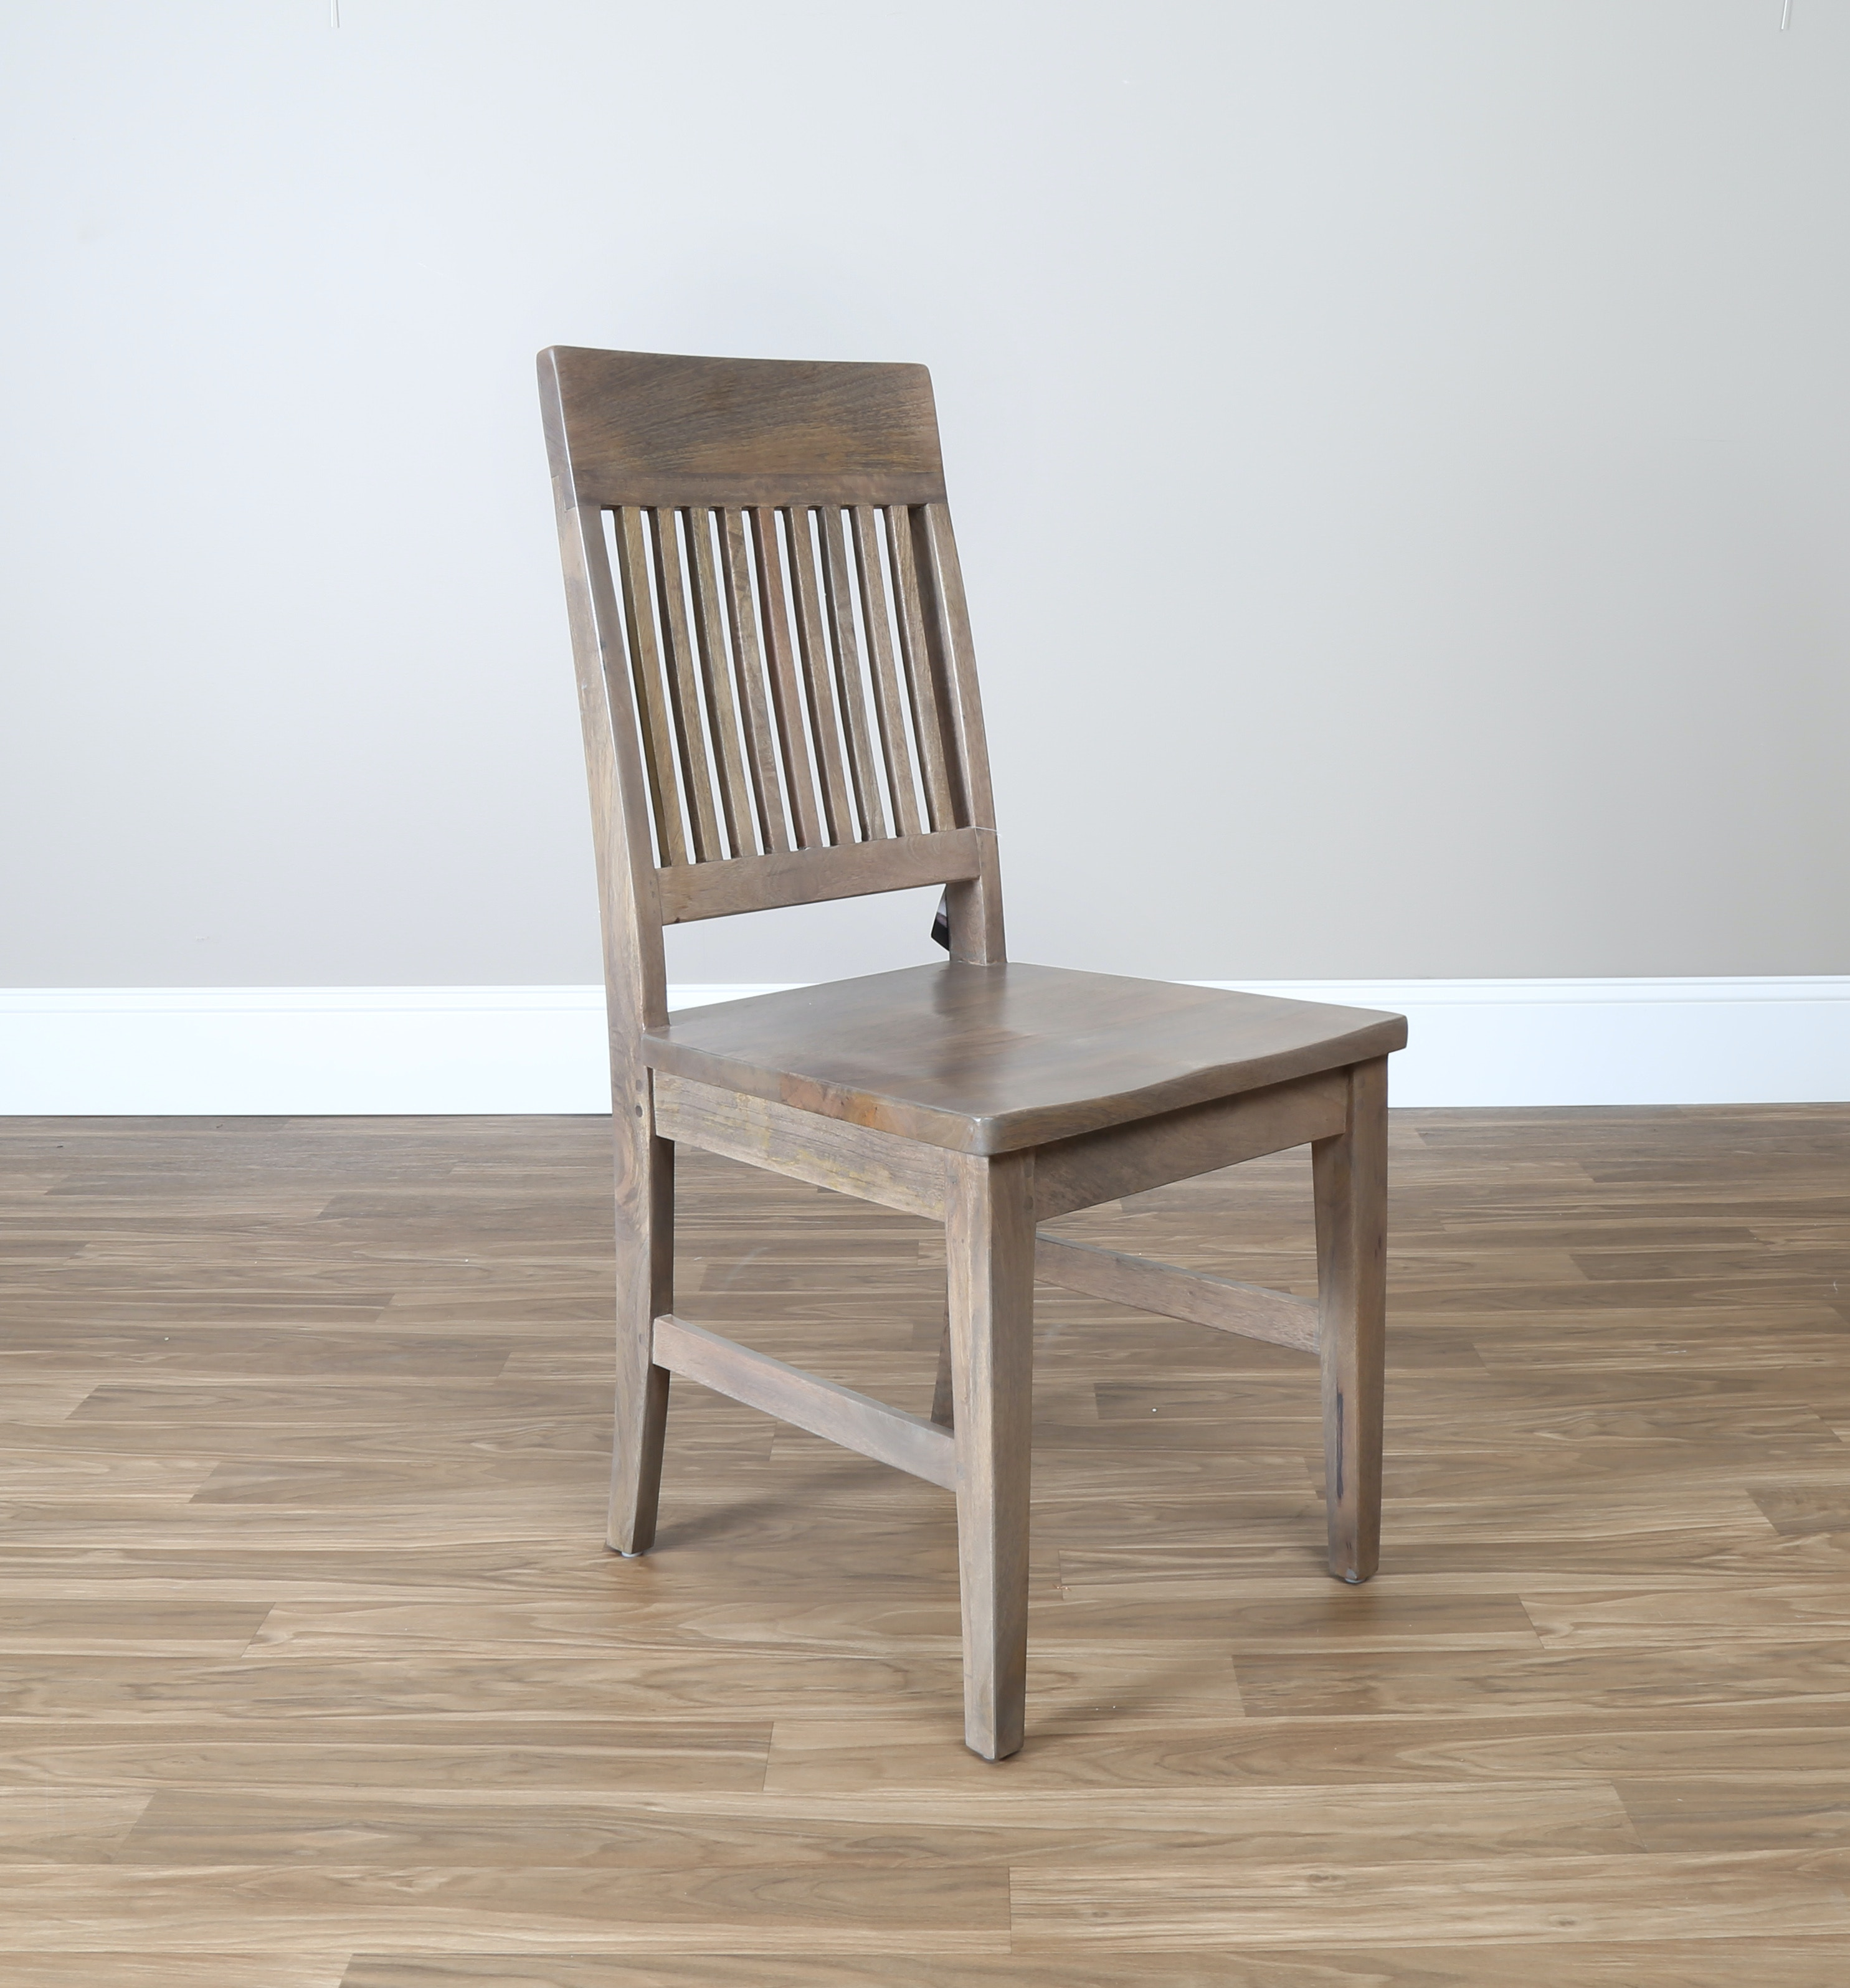 Attrayant Stock Program Bristow Lyons Dining Chair Greige BNGJ2ST From Walter E.  Smithe Furniture +